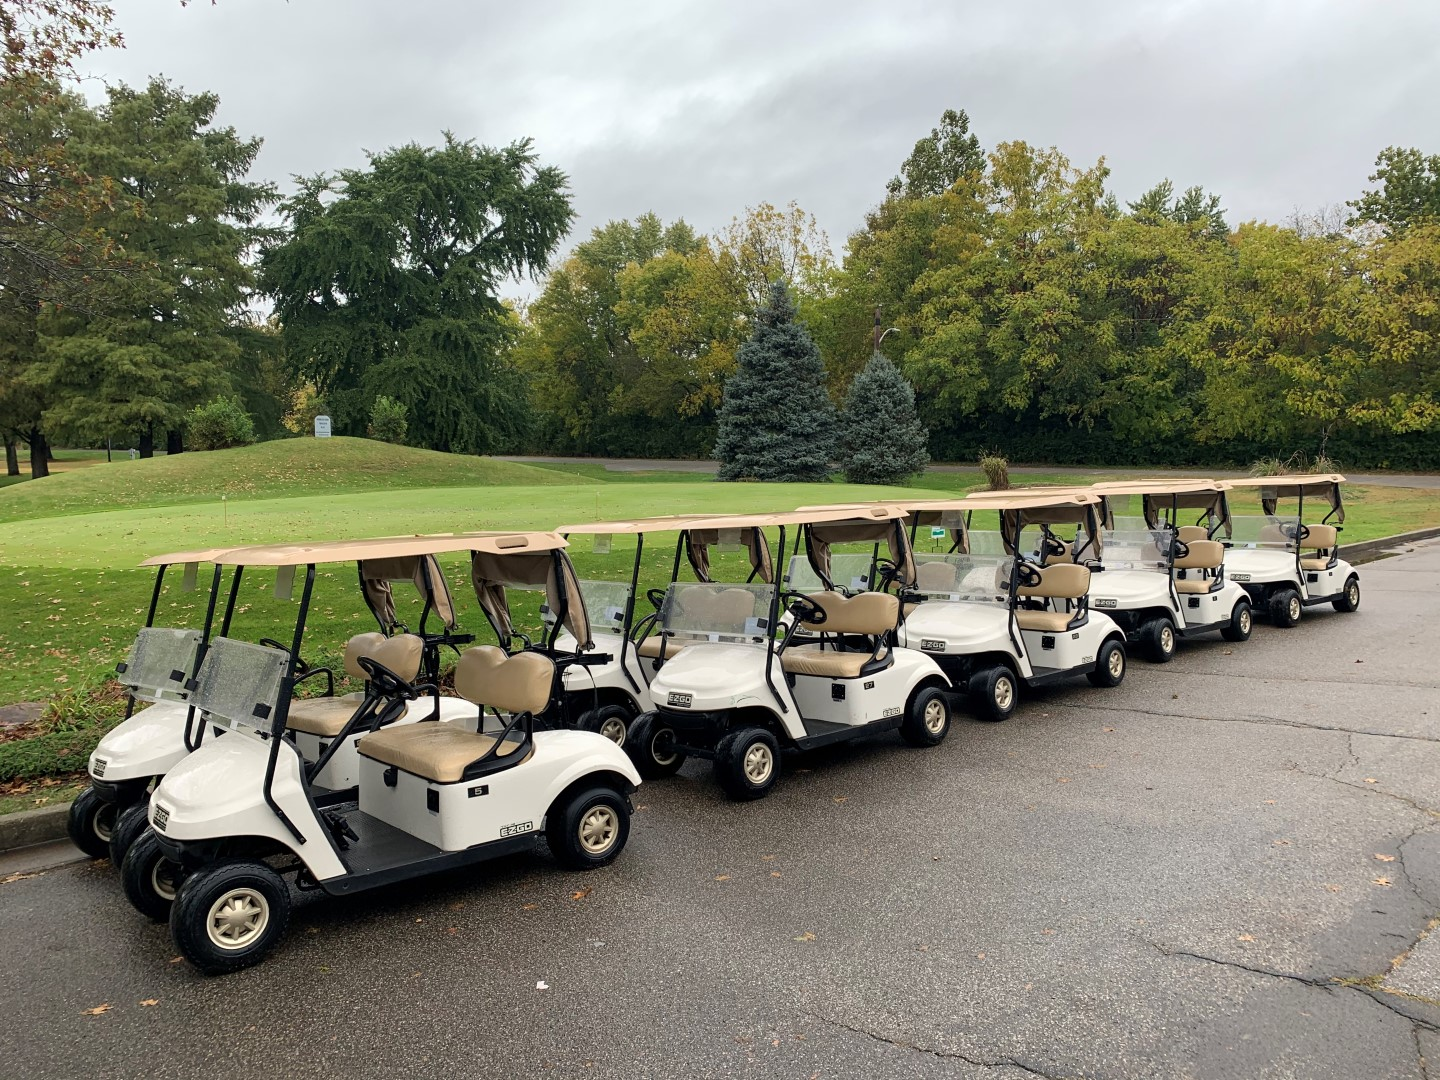 Riverside Golf Course Maintenance Equipment & Golf Carts Auction In Indianapolis, IN